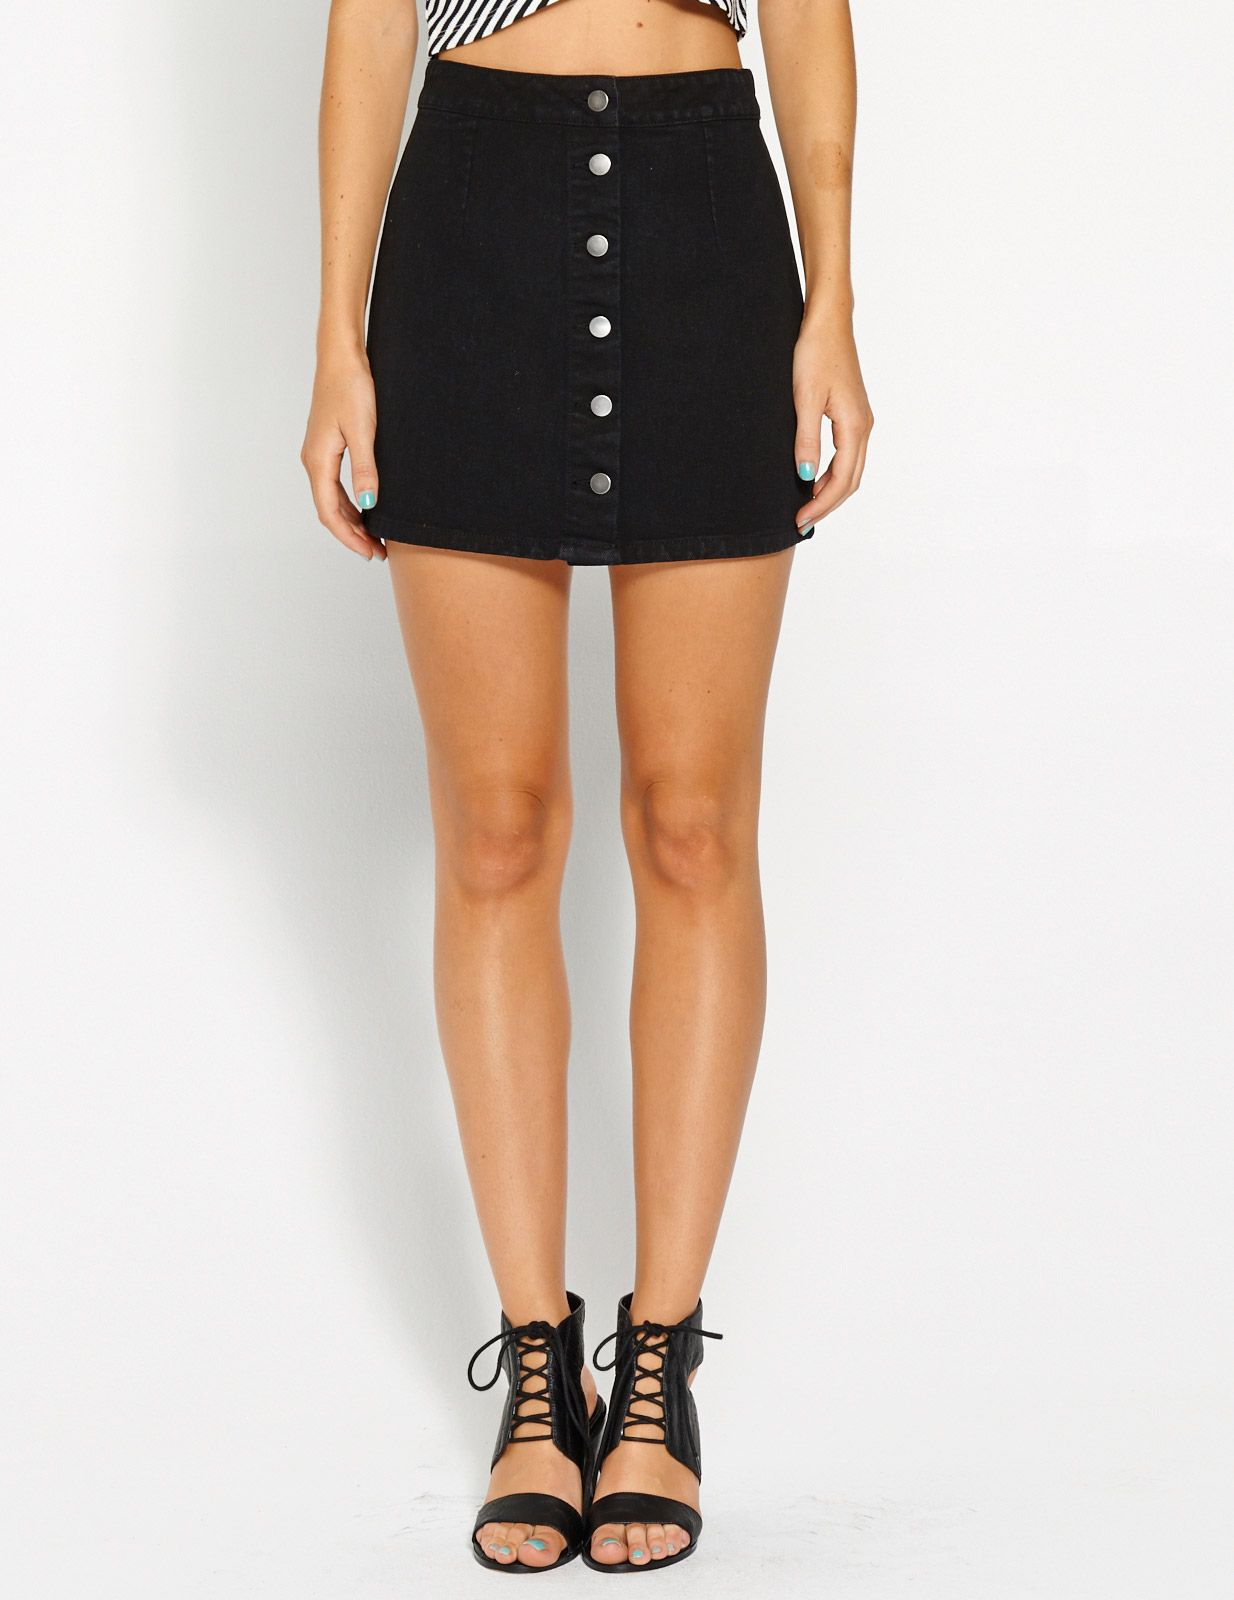 869fadc7432d Myah Black Denim Button Up Mini Skirt | Cute outfits and shoes in ...